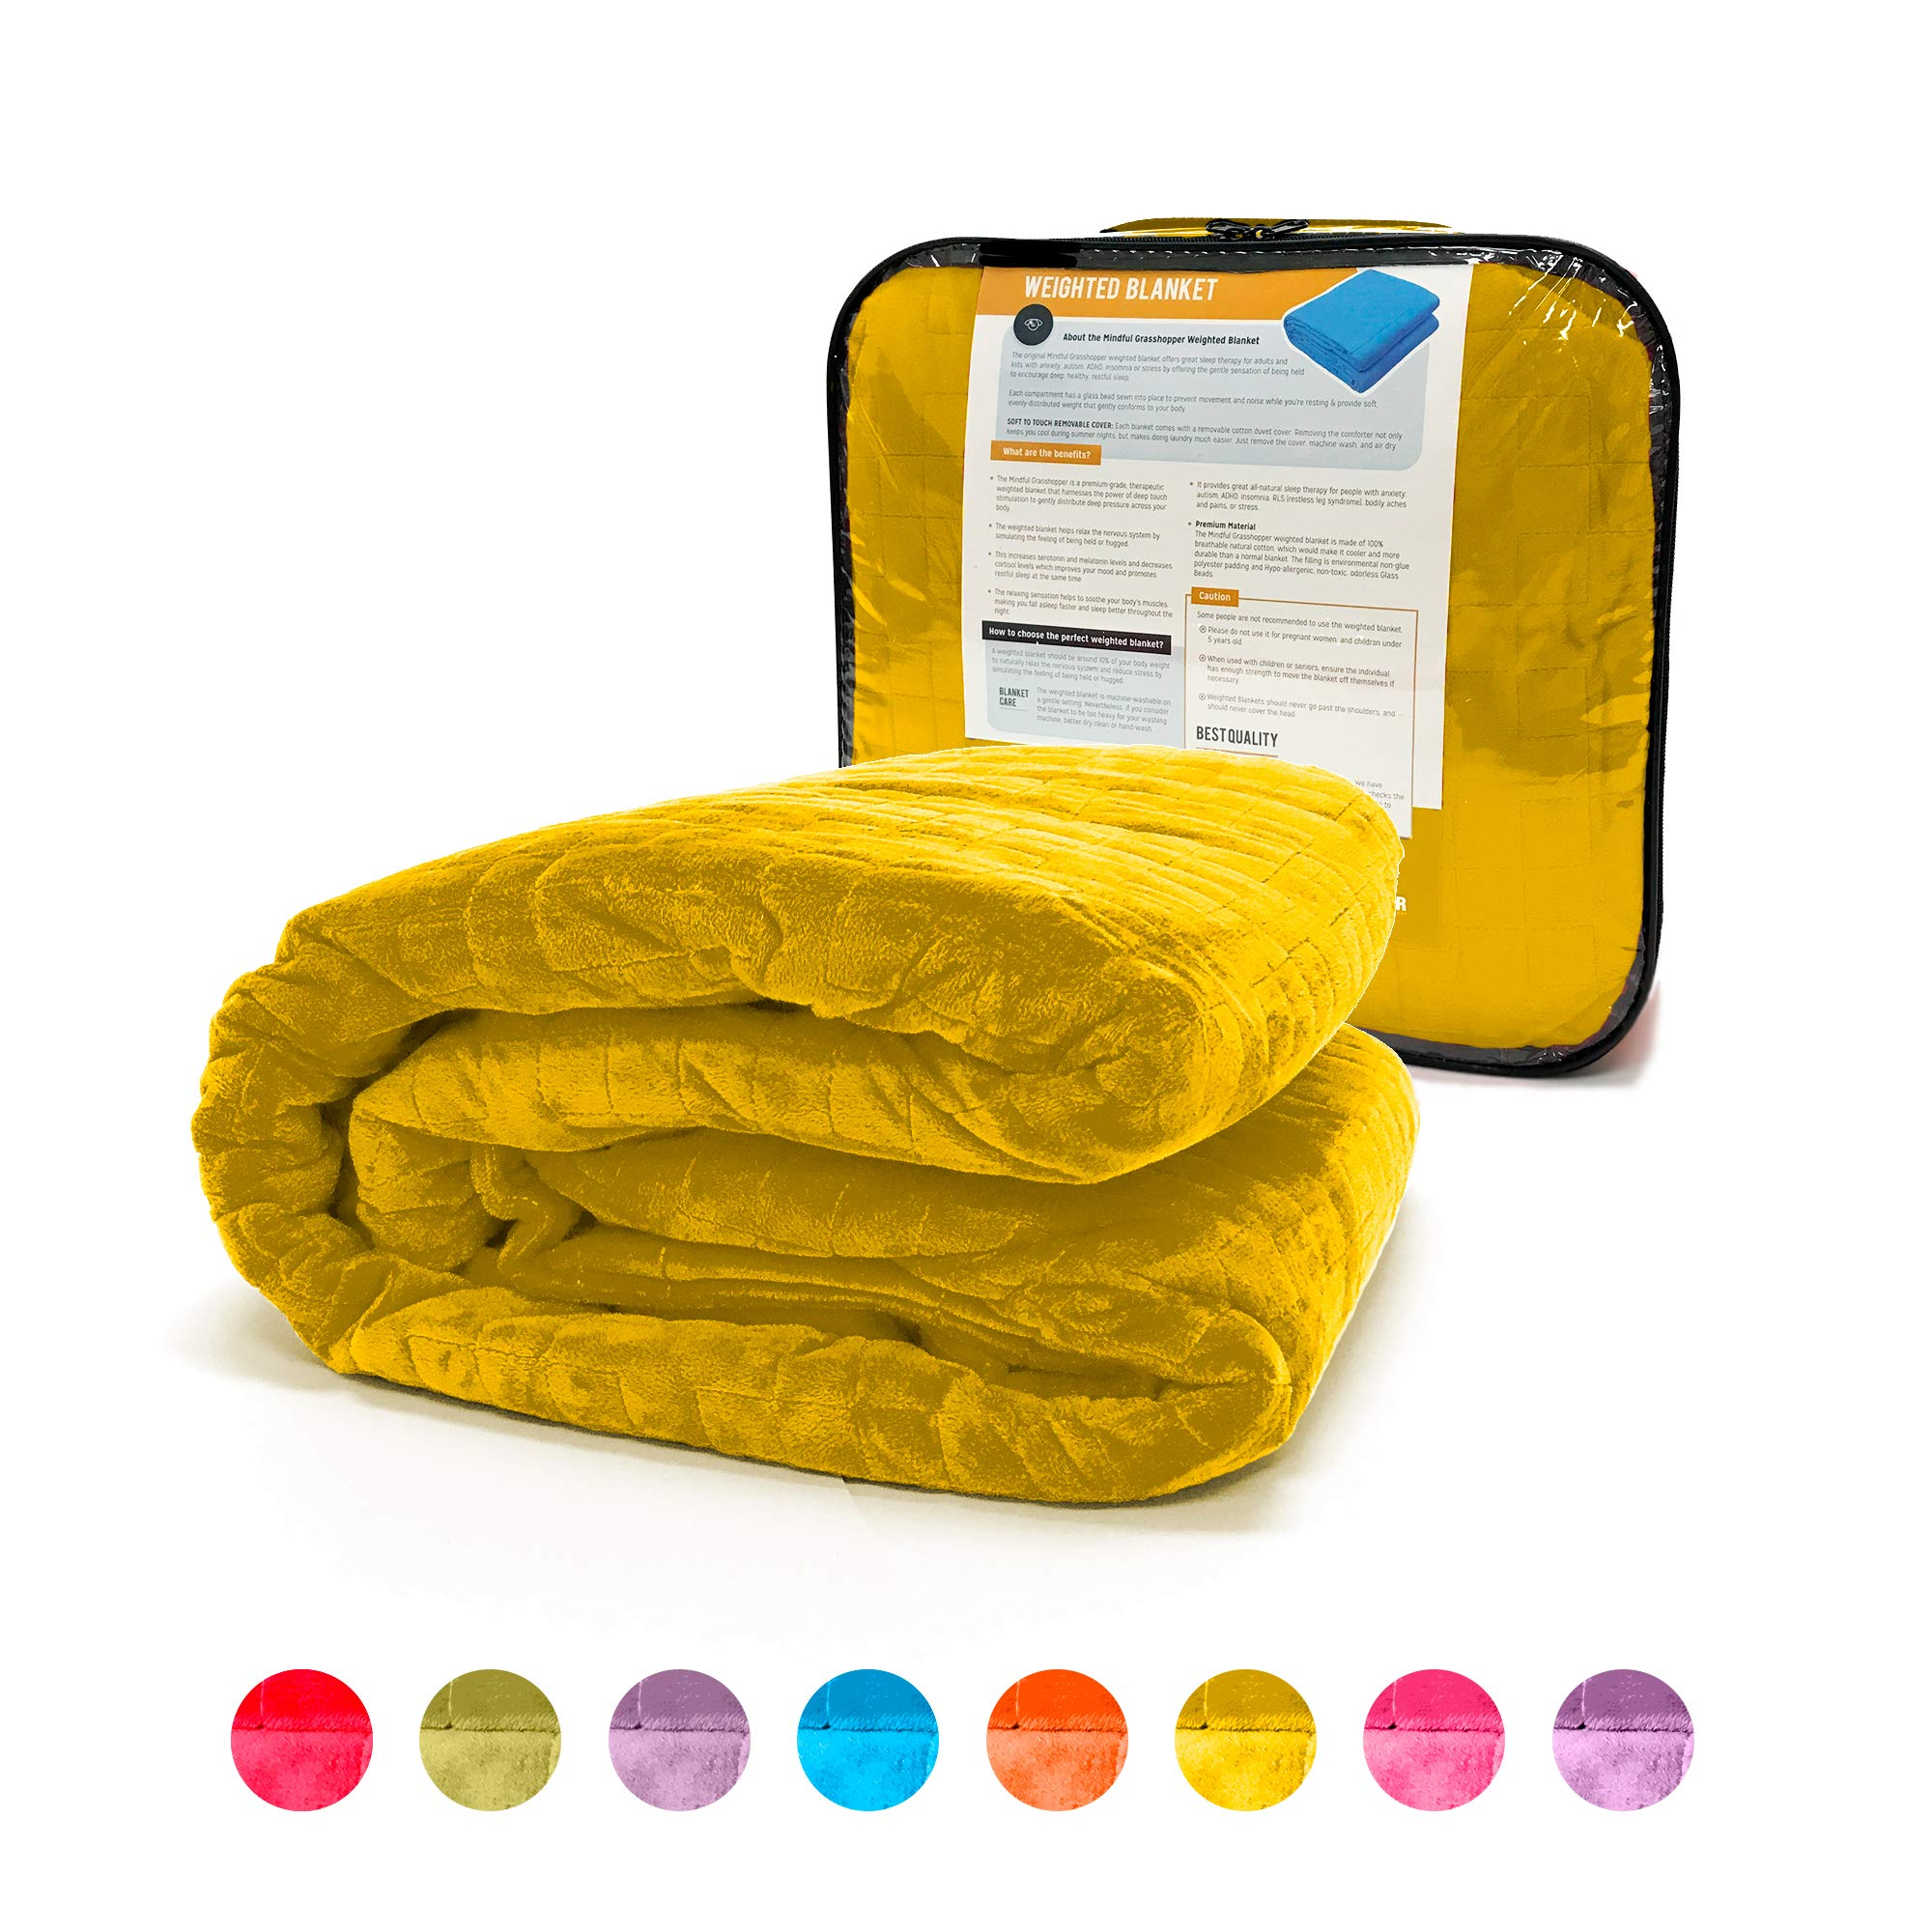 Weighted Blanket for Kids 10 lb, Cool Heavy Blanket for Children 70-100 lbs, Soft Yellow Duvet Cover, Premium Cotton with Glass Beads, Perfect for Boys and Girls, Sensory Blankets, Size 41x60in.